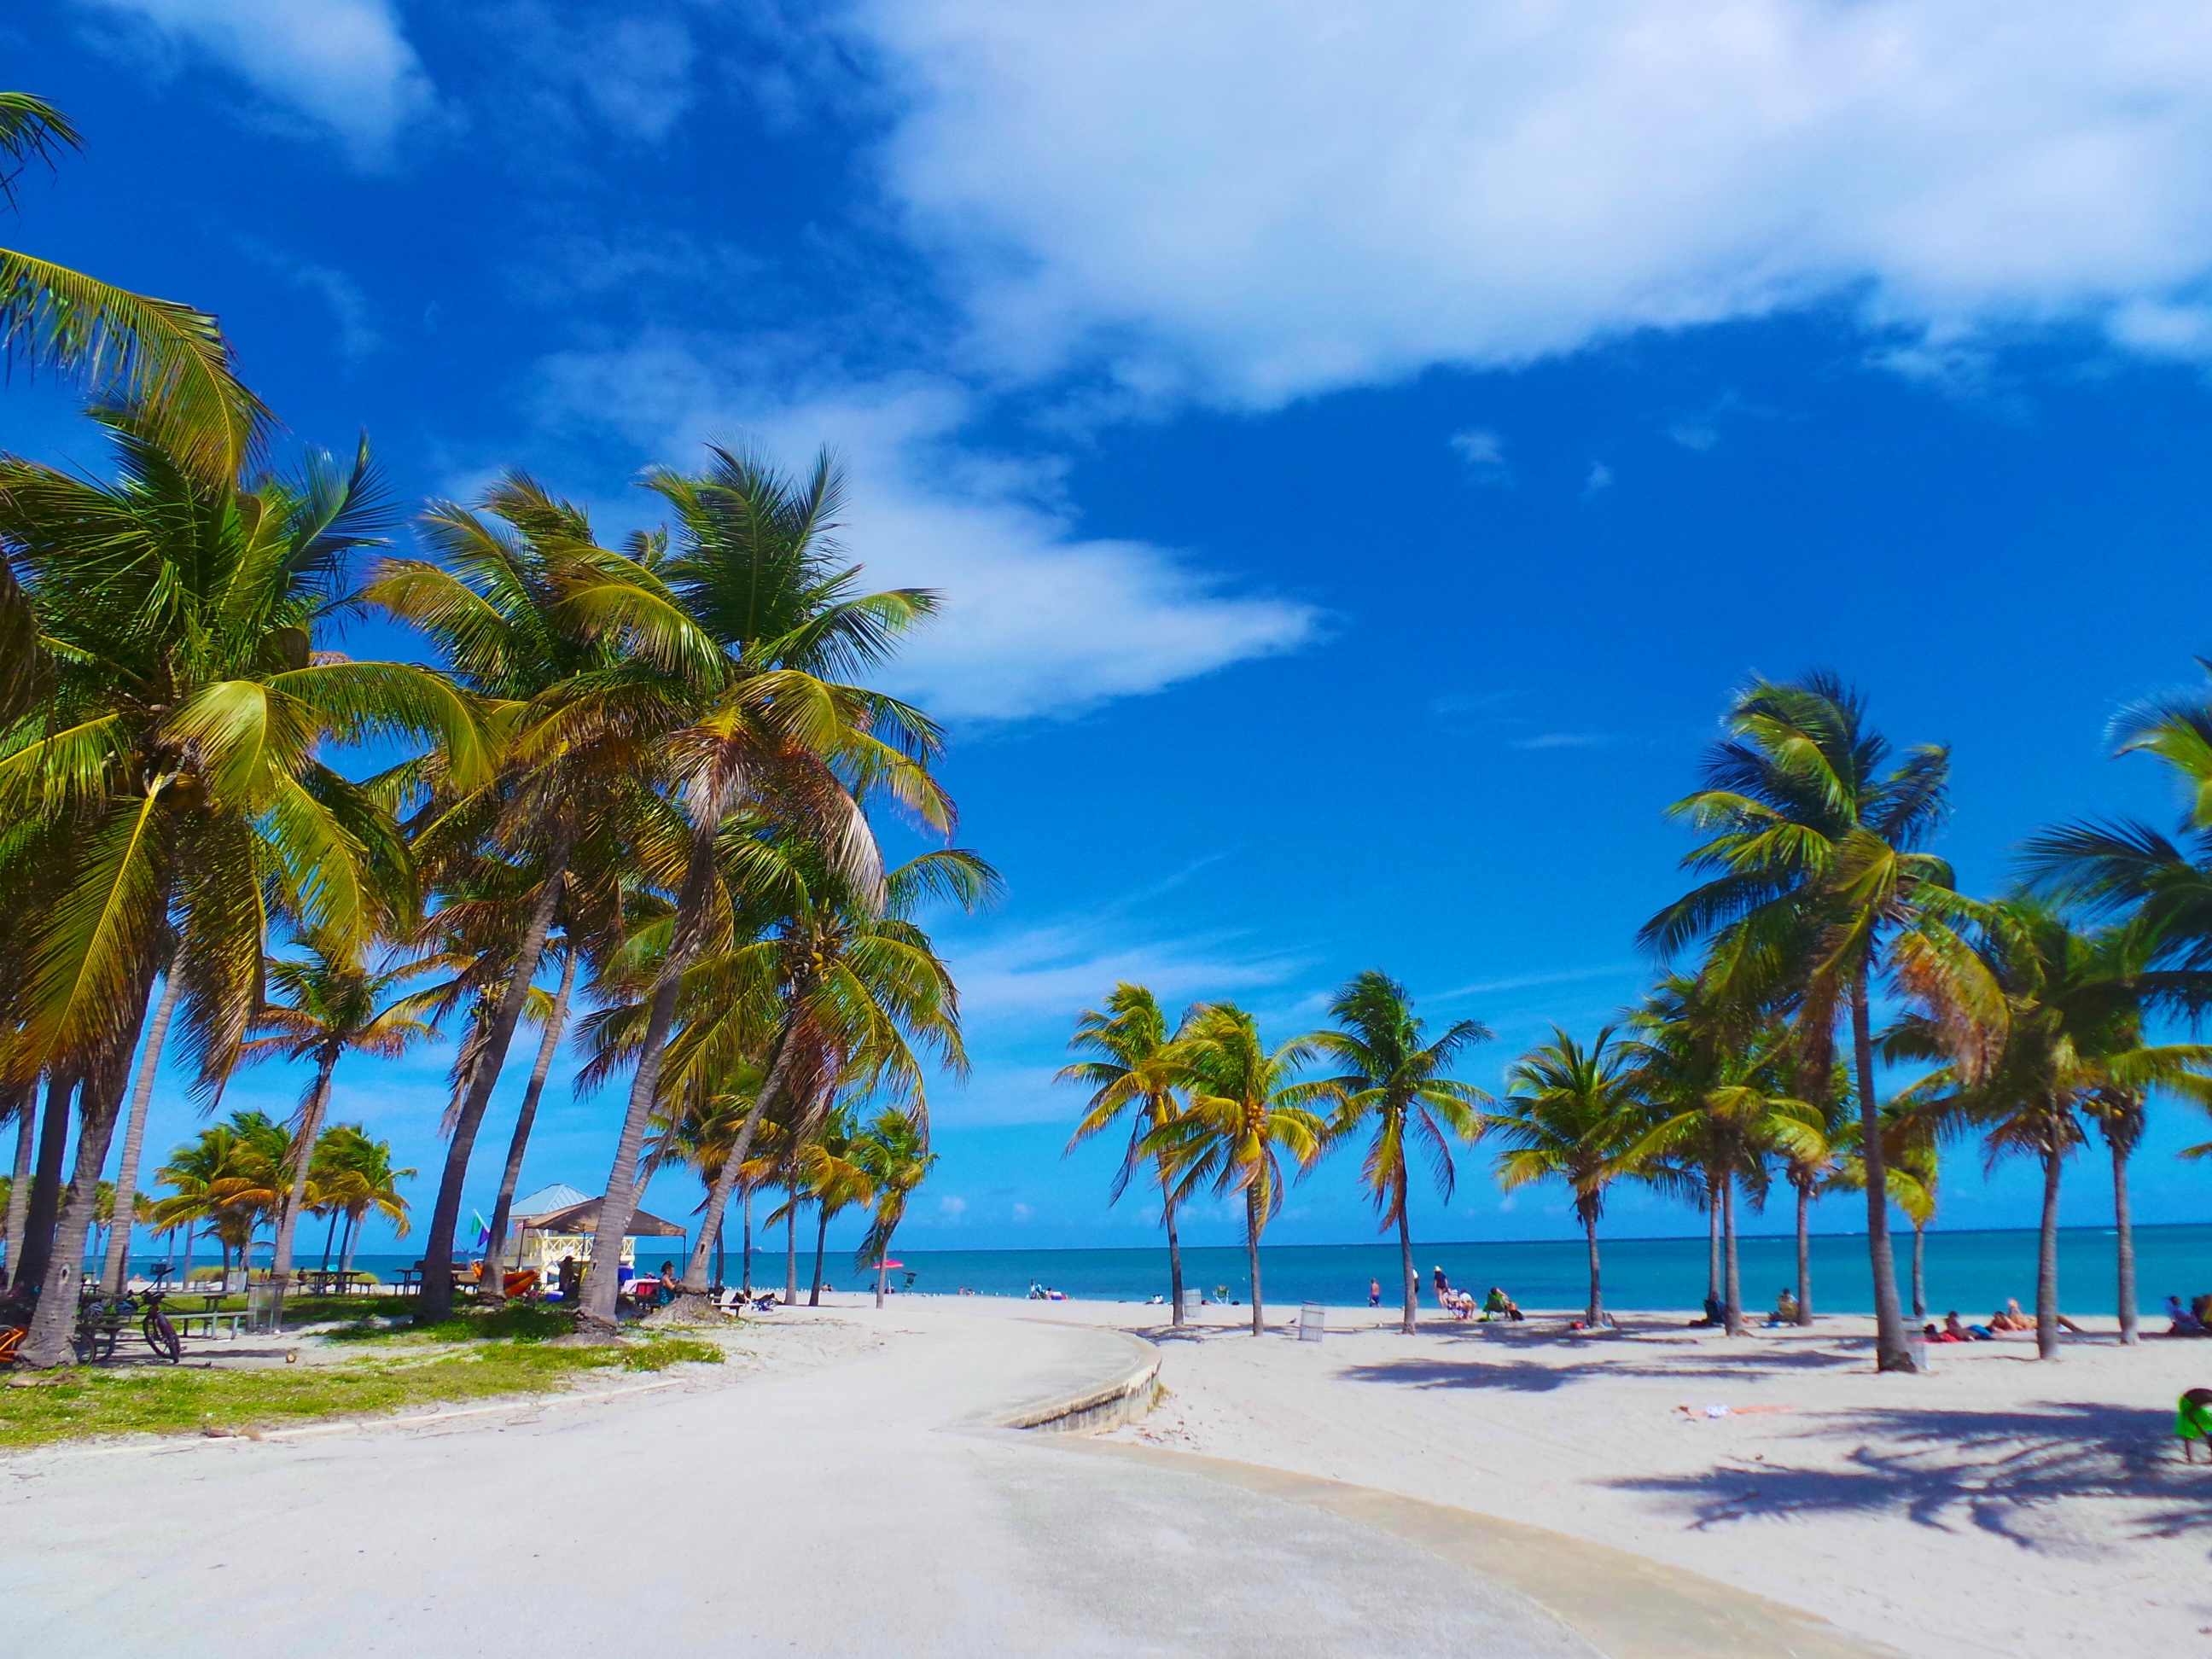 How To Go To Biscayne National Park From Miami Beach